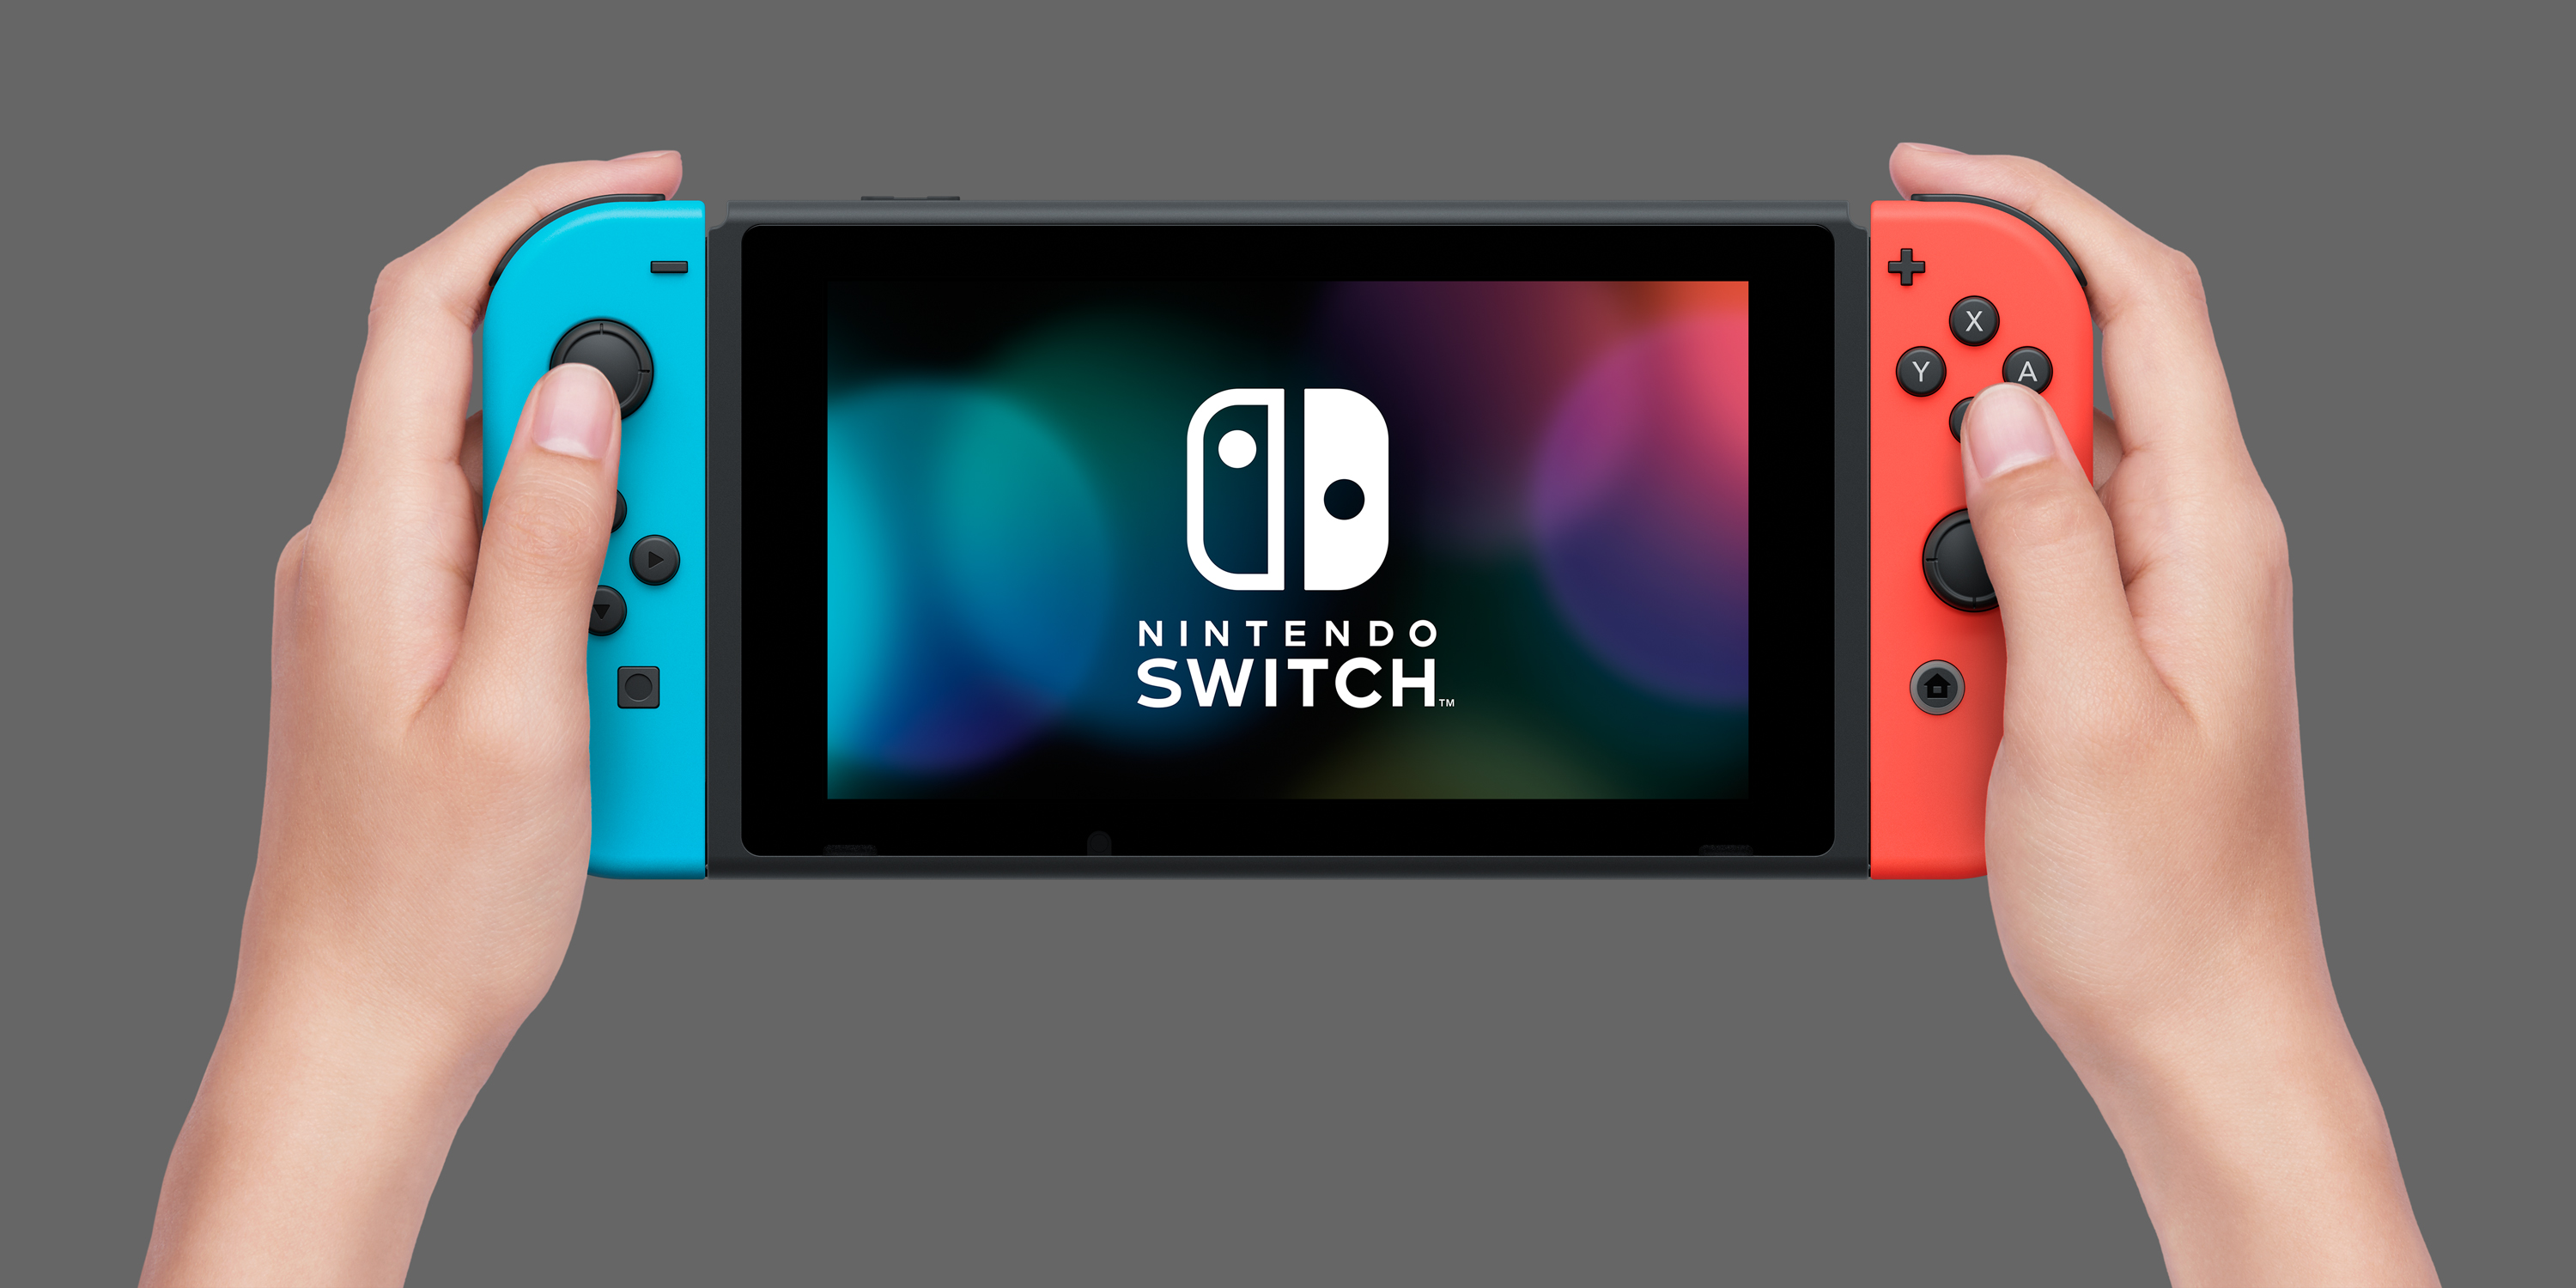 Nintendo Switch hands-on verdict: too little, too early